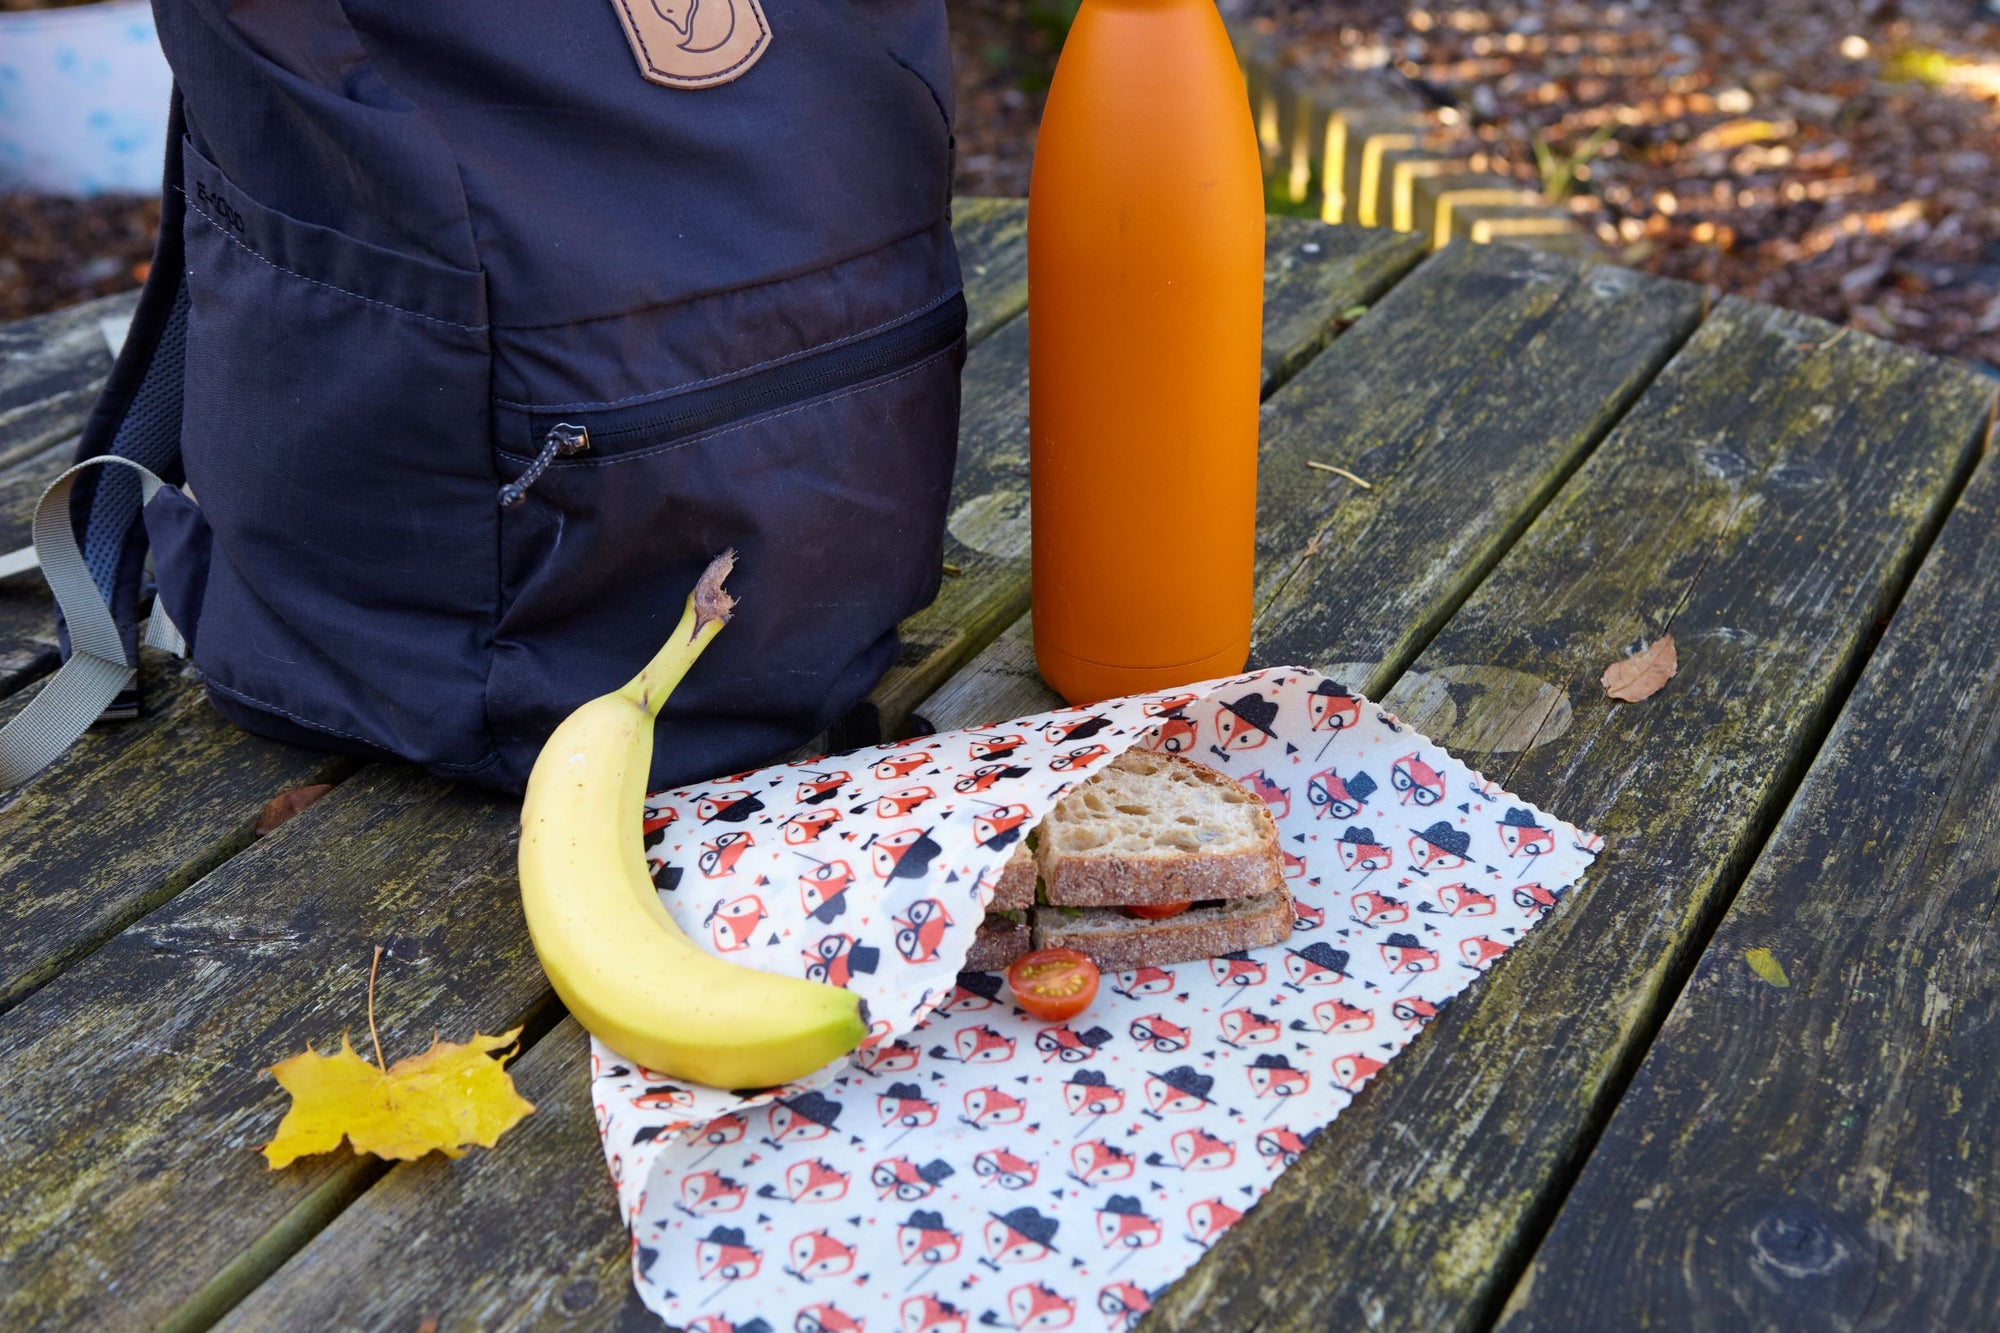 Beeswax Bumble Wrap Sandwich pack